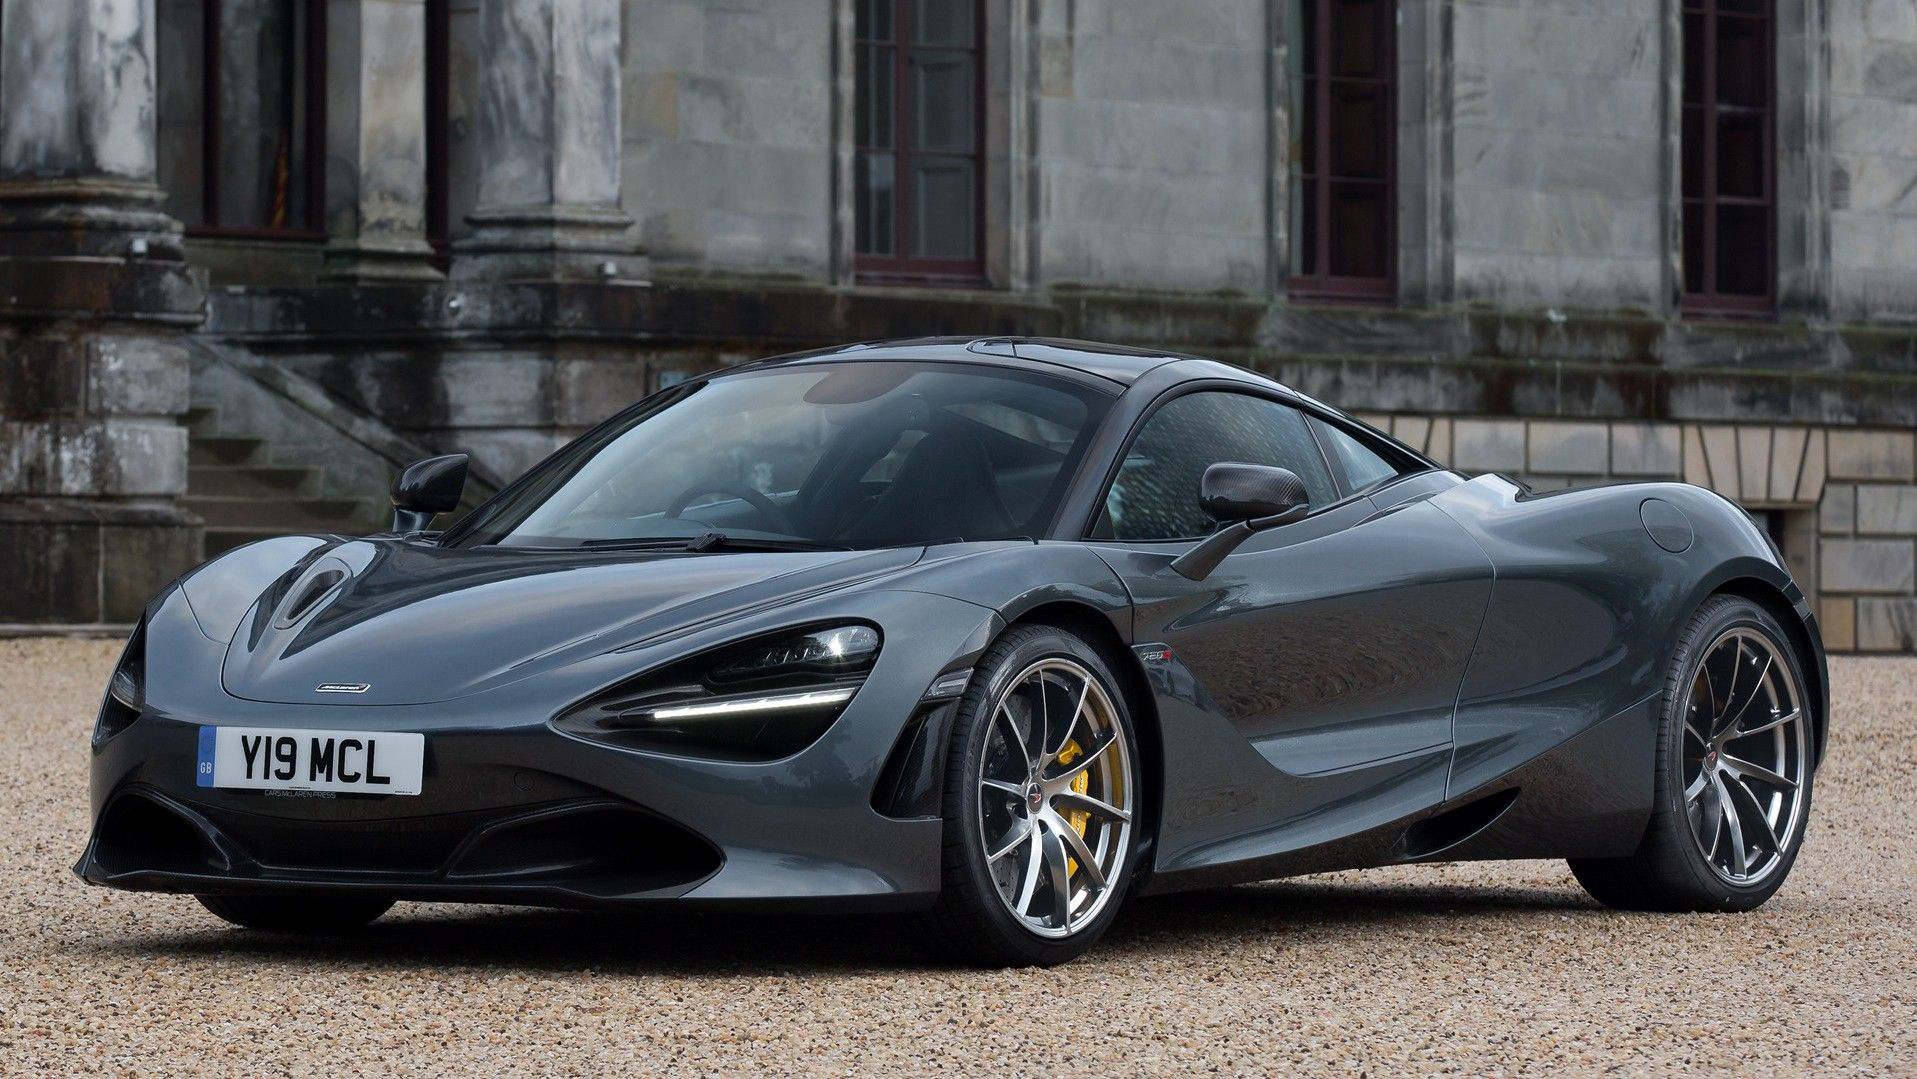 2020 Mclaren 720s Review, Specifications, Prices, and Features | CARHP